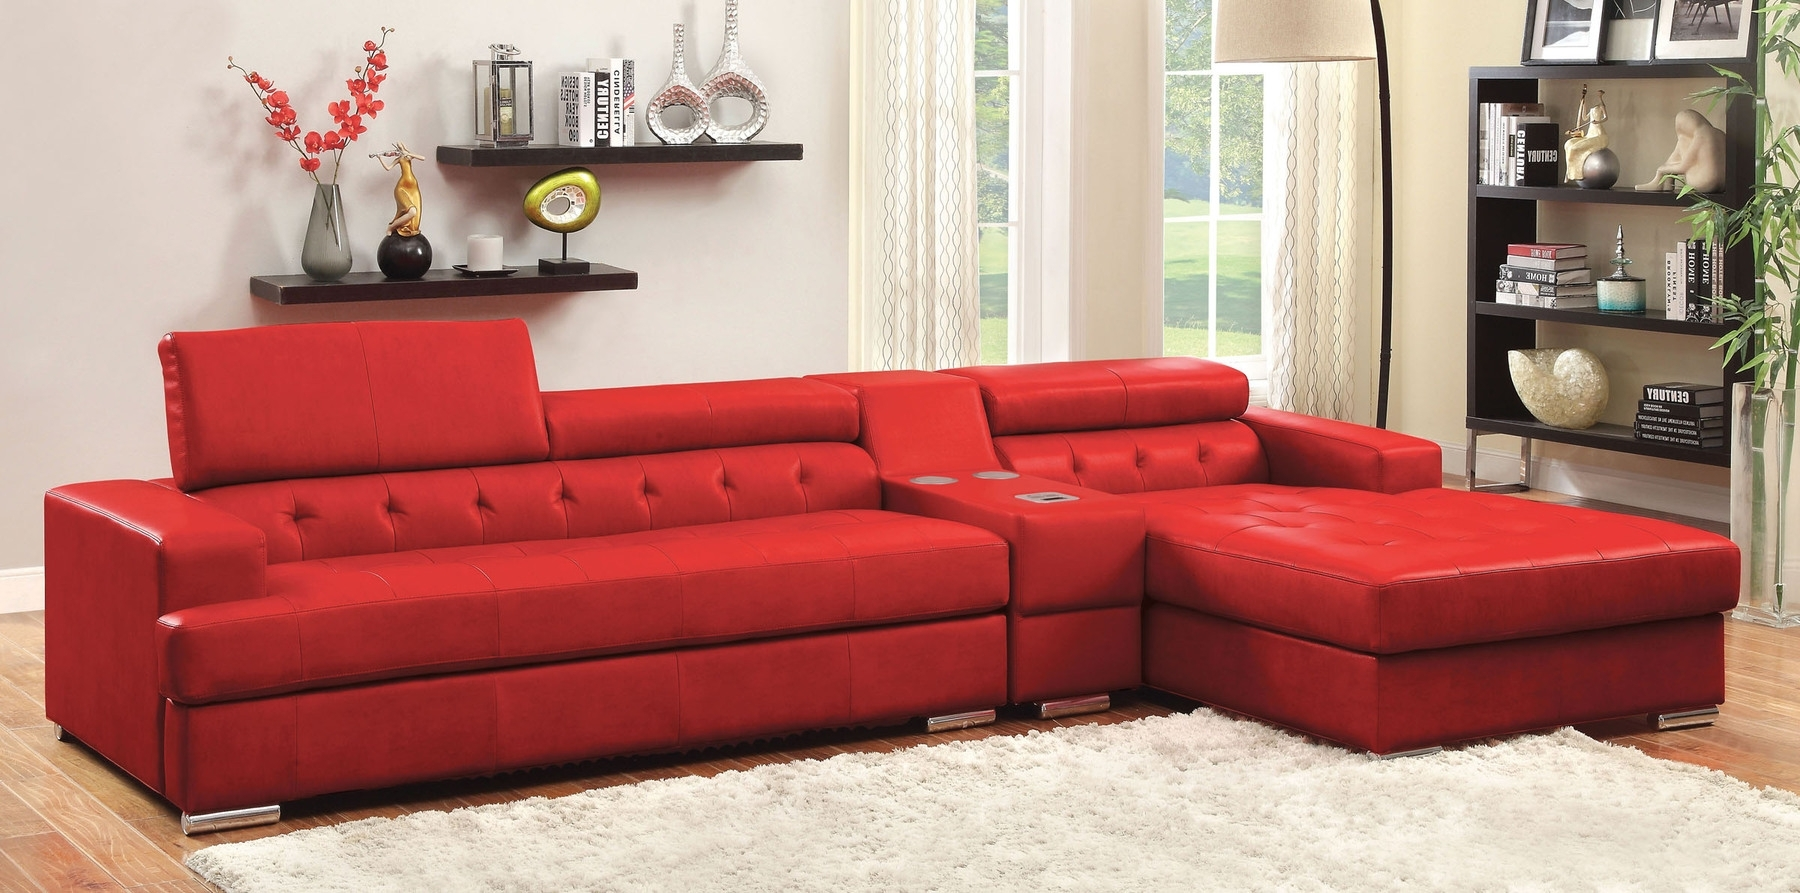 Fashionable Red Sectional Sofas In Floria Red Sectional Sofa Cm6122 Furniture Of America Sectional (View 6 of 20)